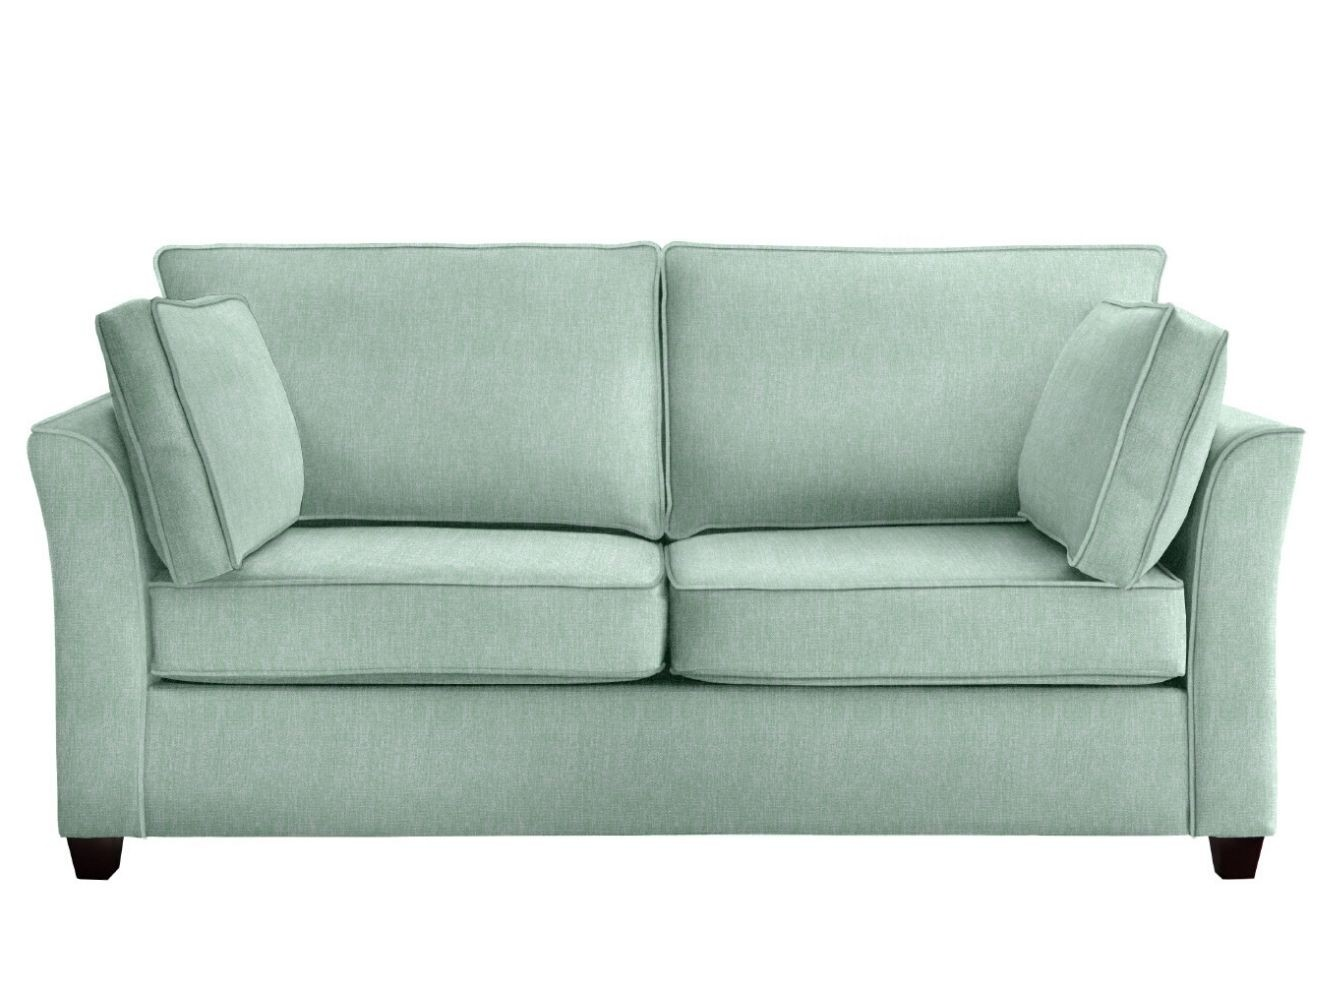 This is how I look in Stain Resistant Broad Weave Linen Wolf Grey with reflex foam seat cushions